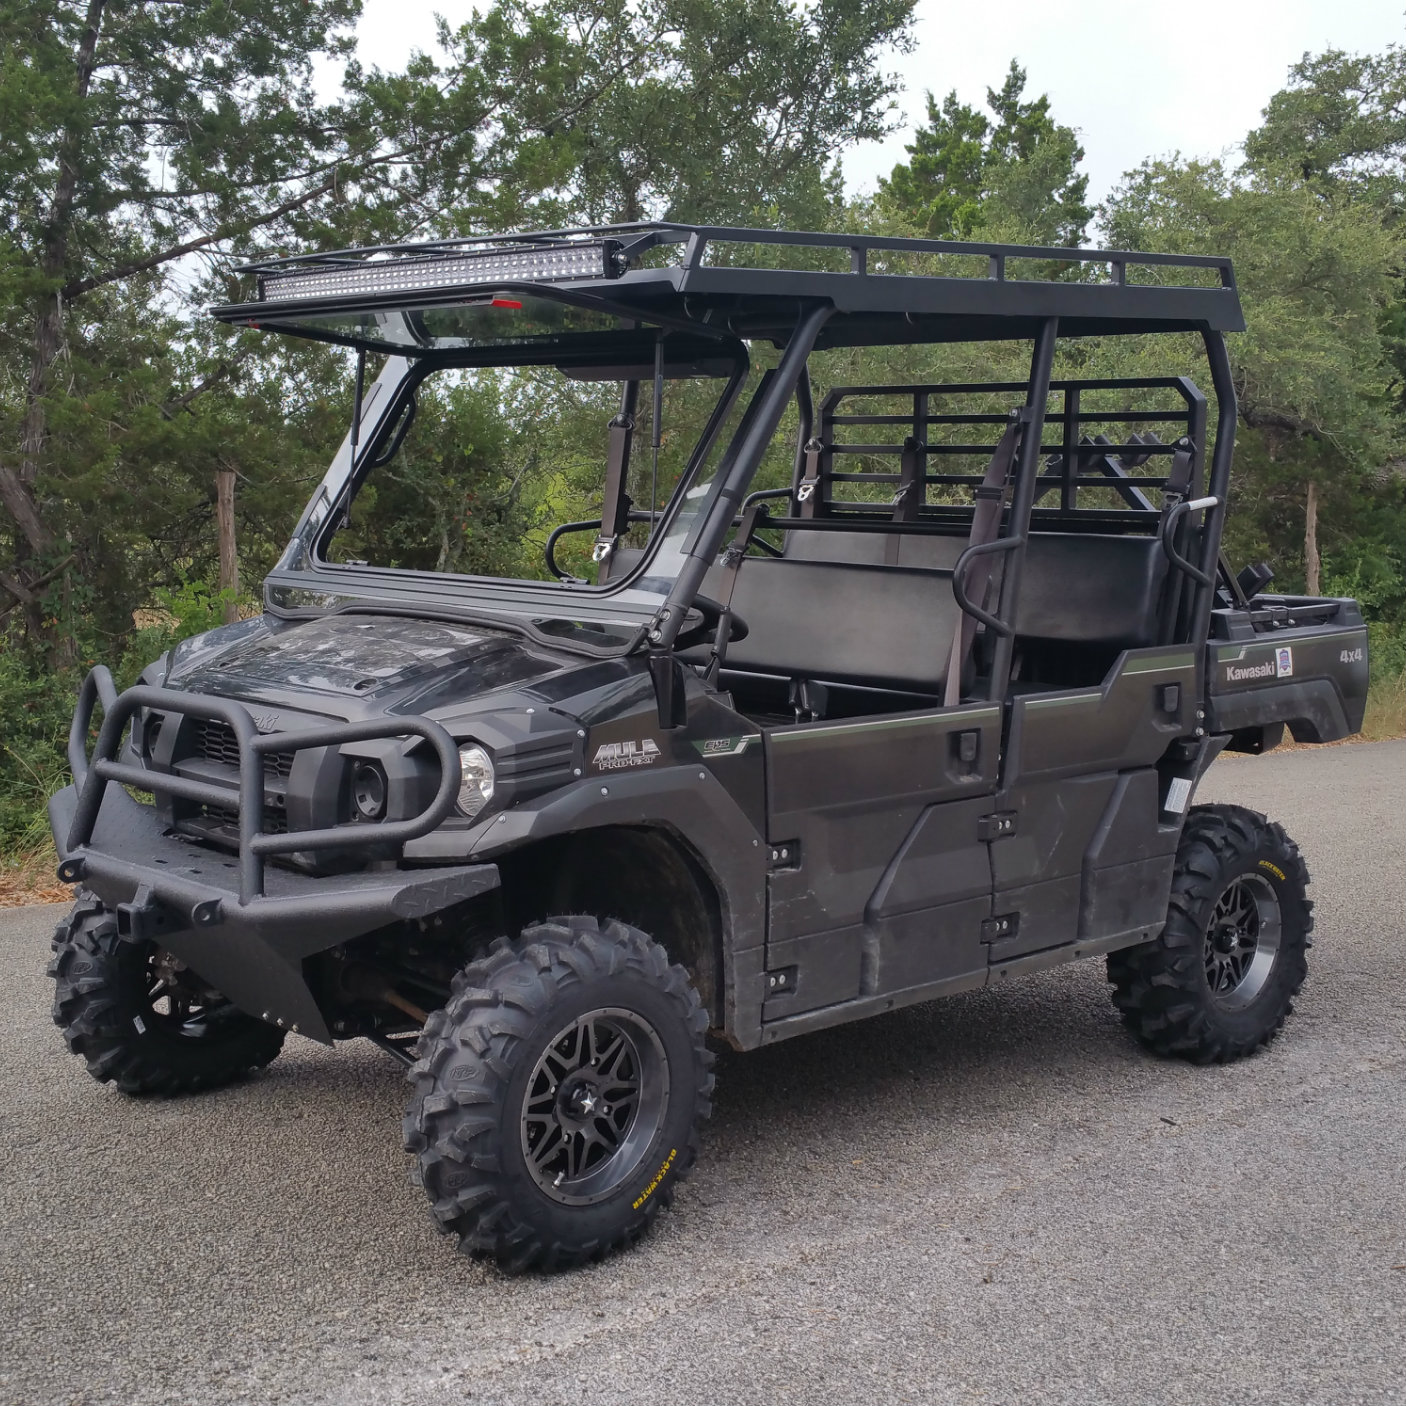 kawasaki-mule-pro-fxt-metal-roof-with-flip-out-windshield.jpg